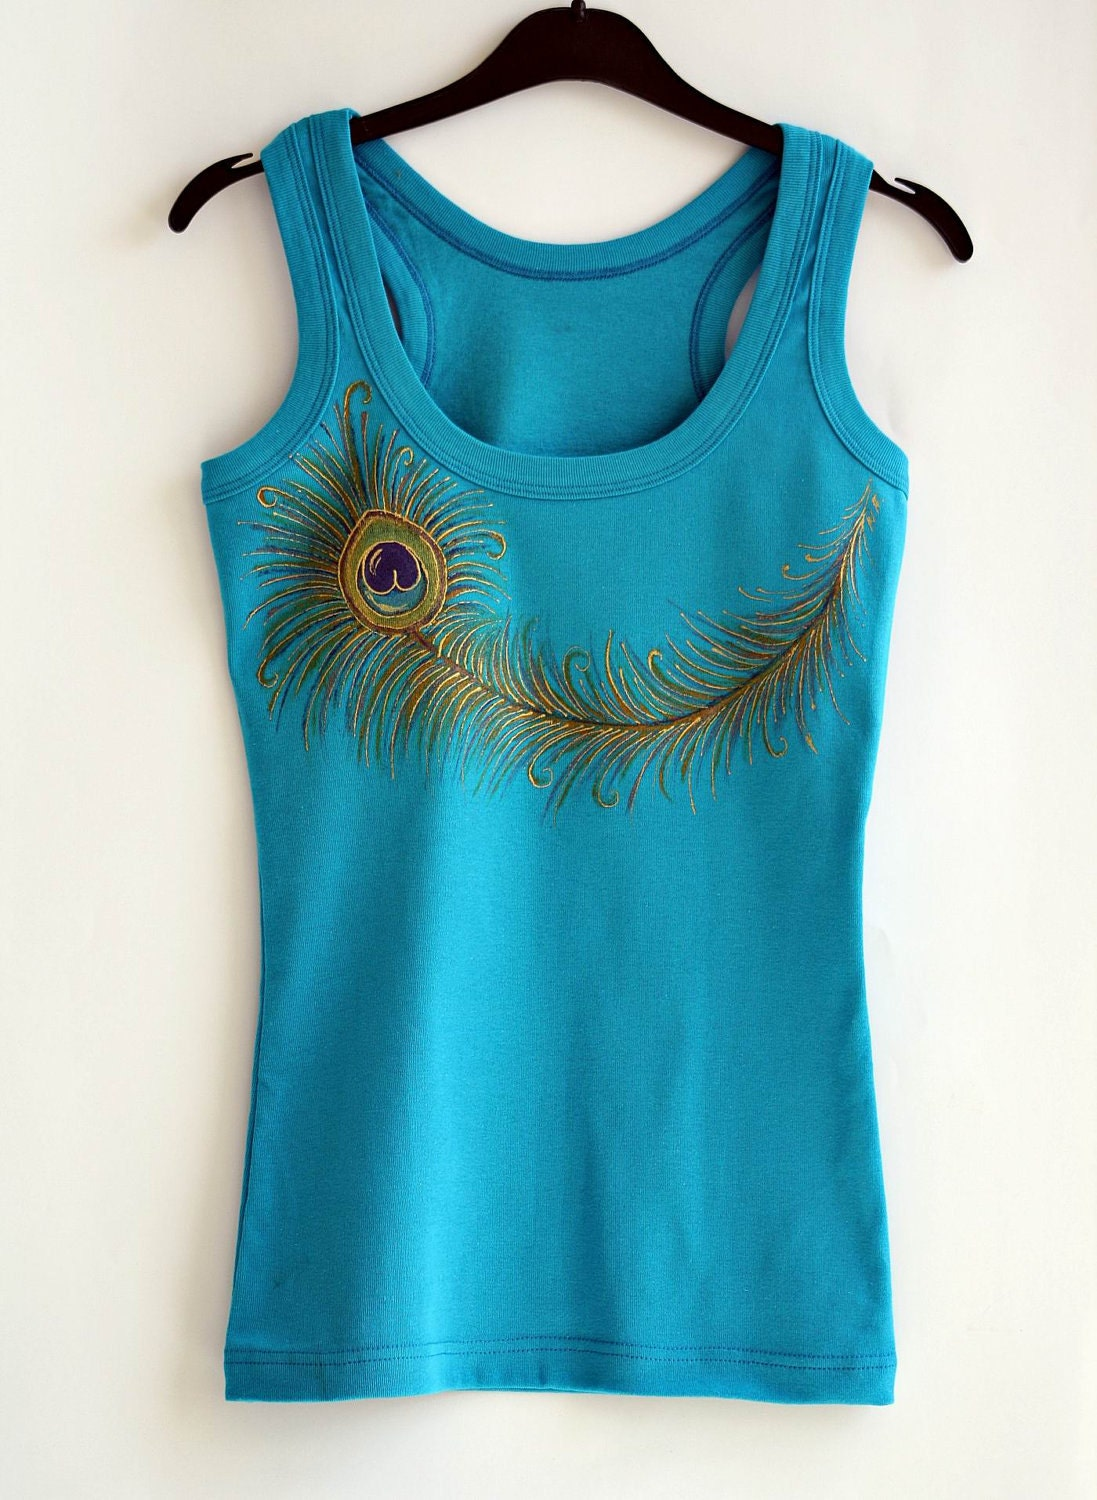 Peacock  Feather  Hand Painted Cotton Turquoise Top - MishMashStore